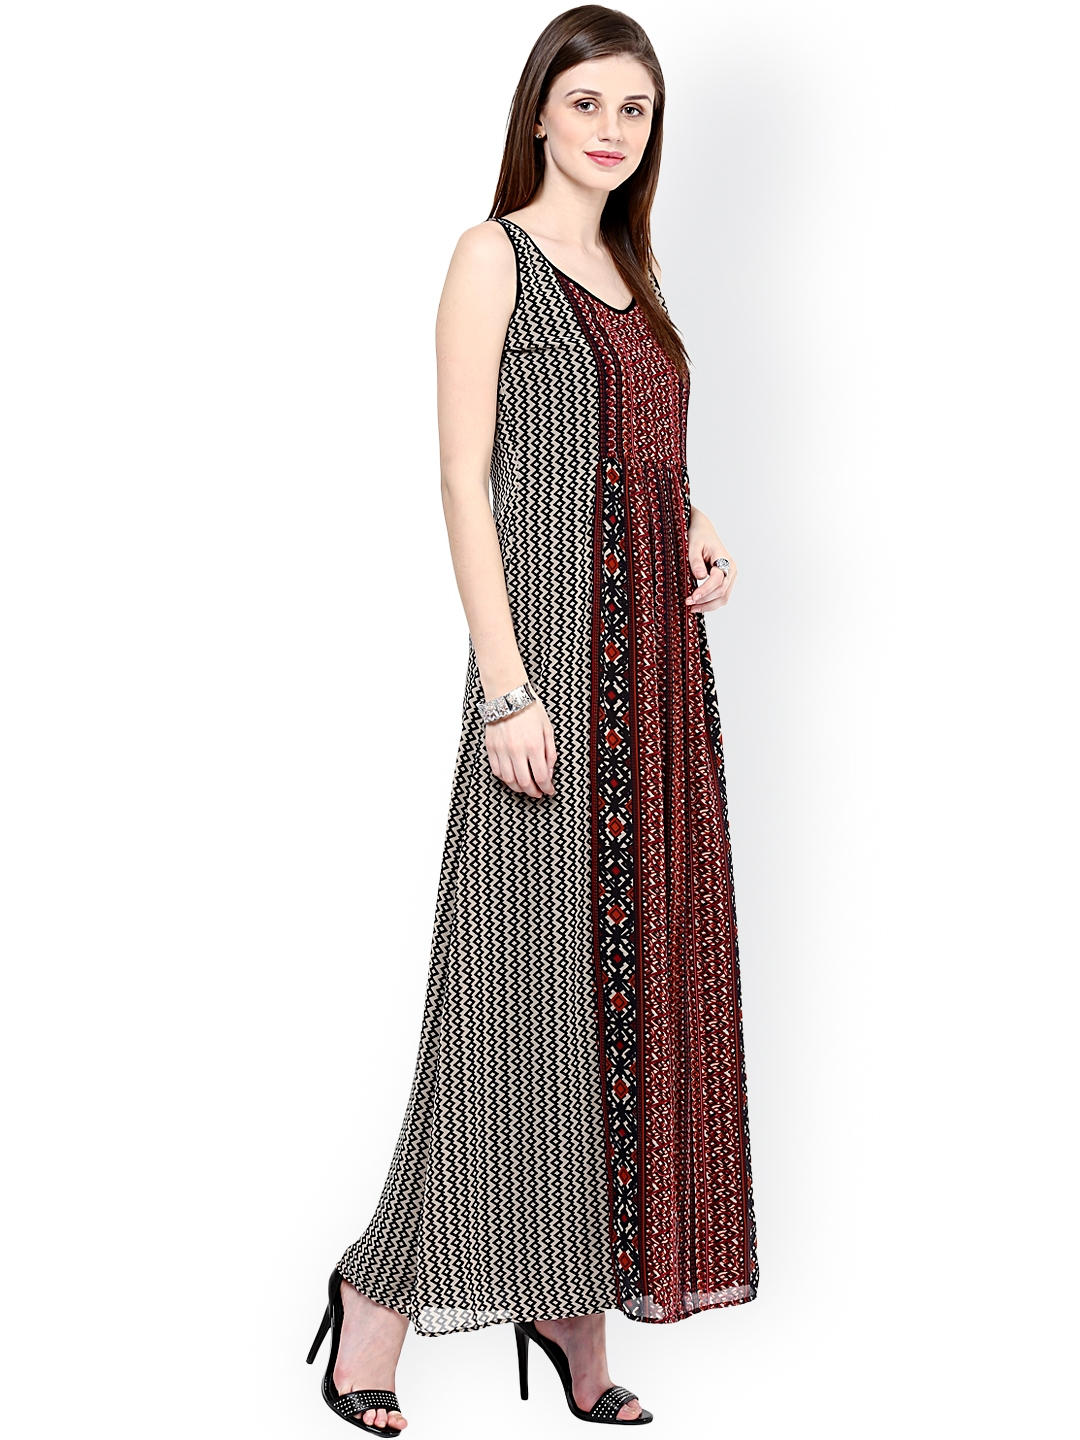 6897b9f99c9 Buy Taurus Beige   Black Printed Maxi Dress - Dresses for Women ...